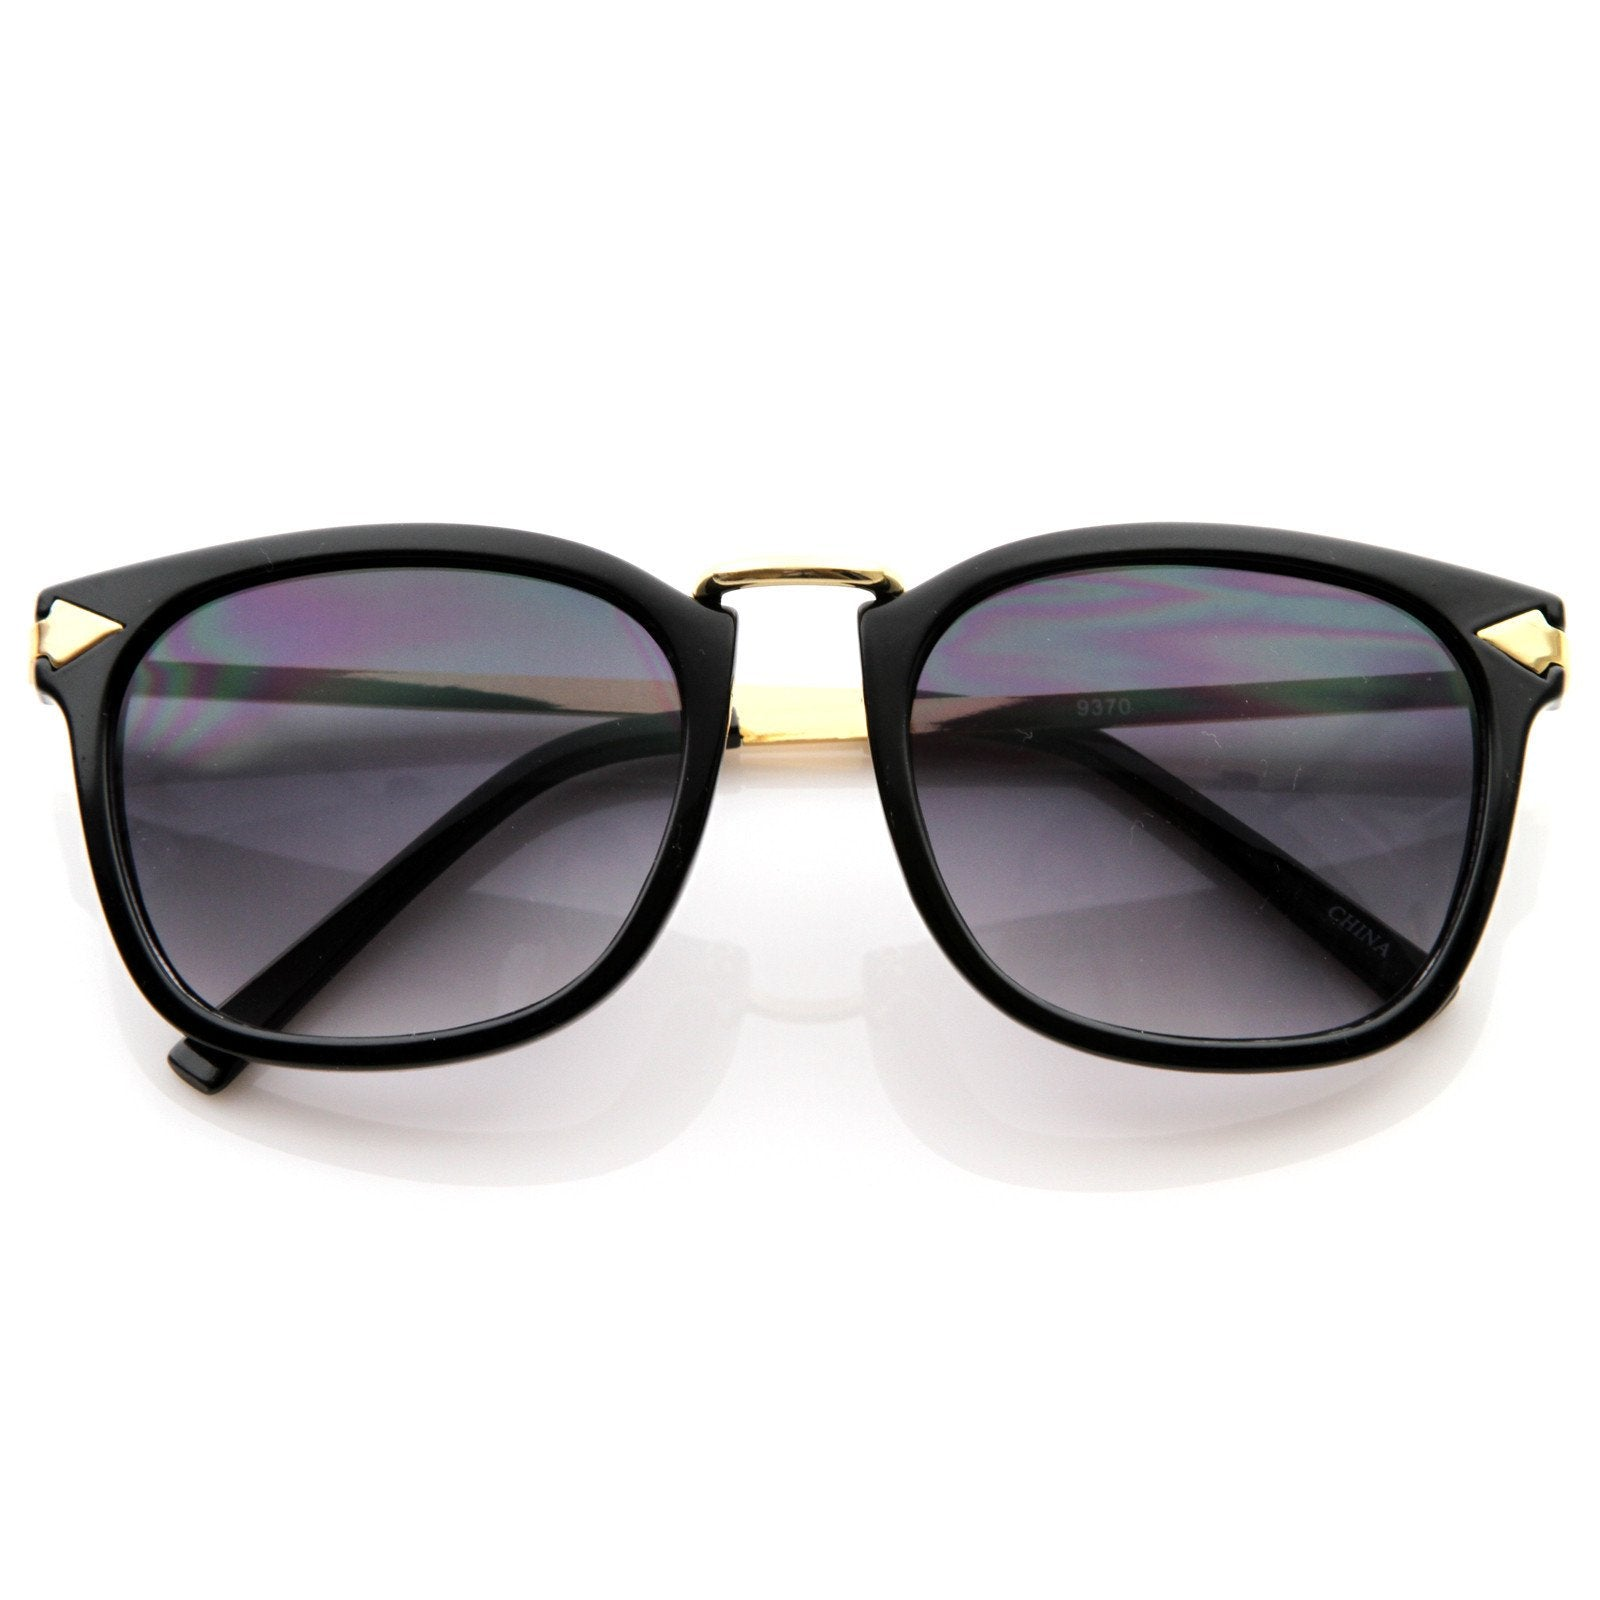 Vintage Artful European Fashion Horned Rim Sunglasses 8600